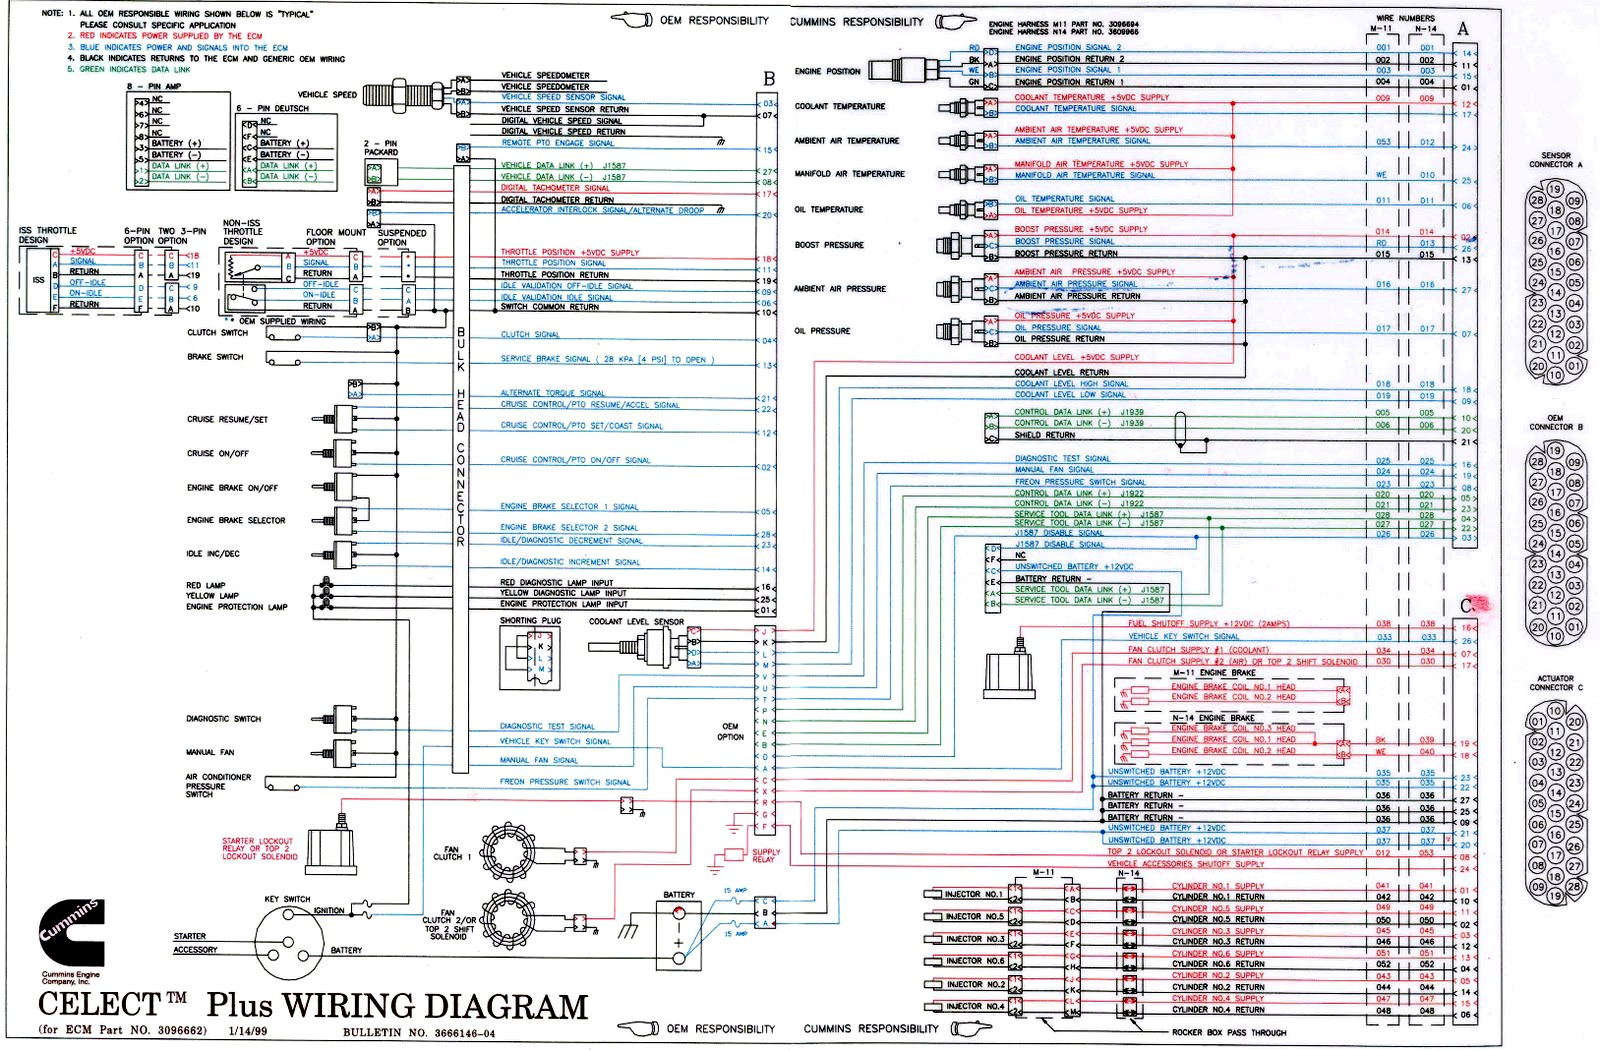 Ddec 3 ecm wiring diagram on cummins 8 3 ecm wiring diagram efcaviation com 1993 C1500 Wiring Diagram Gas Heater Wiring Diagram